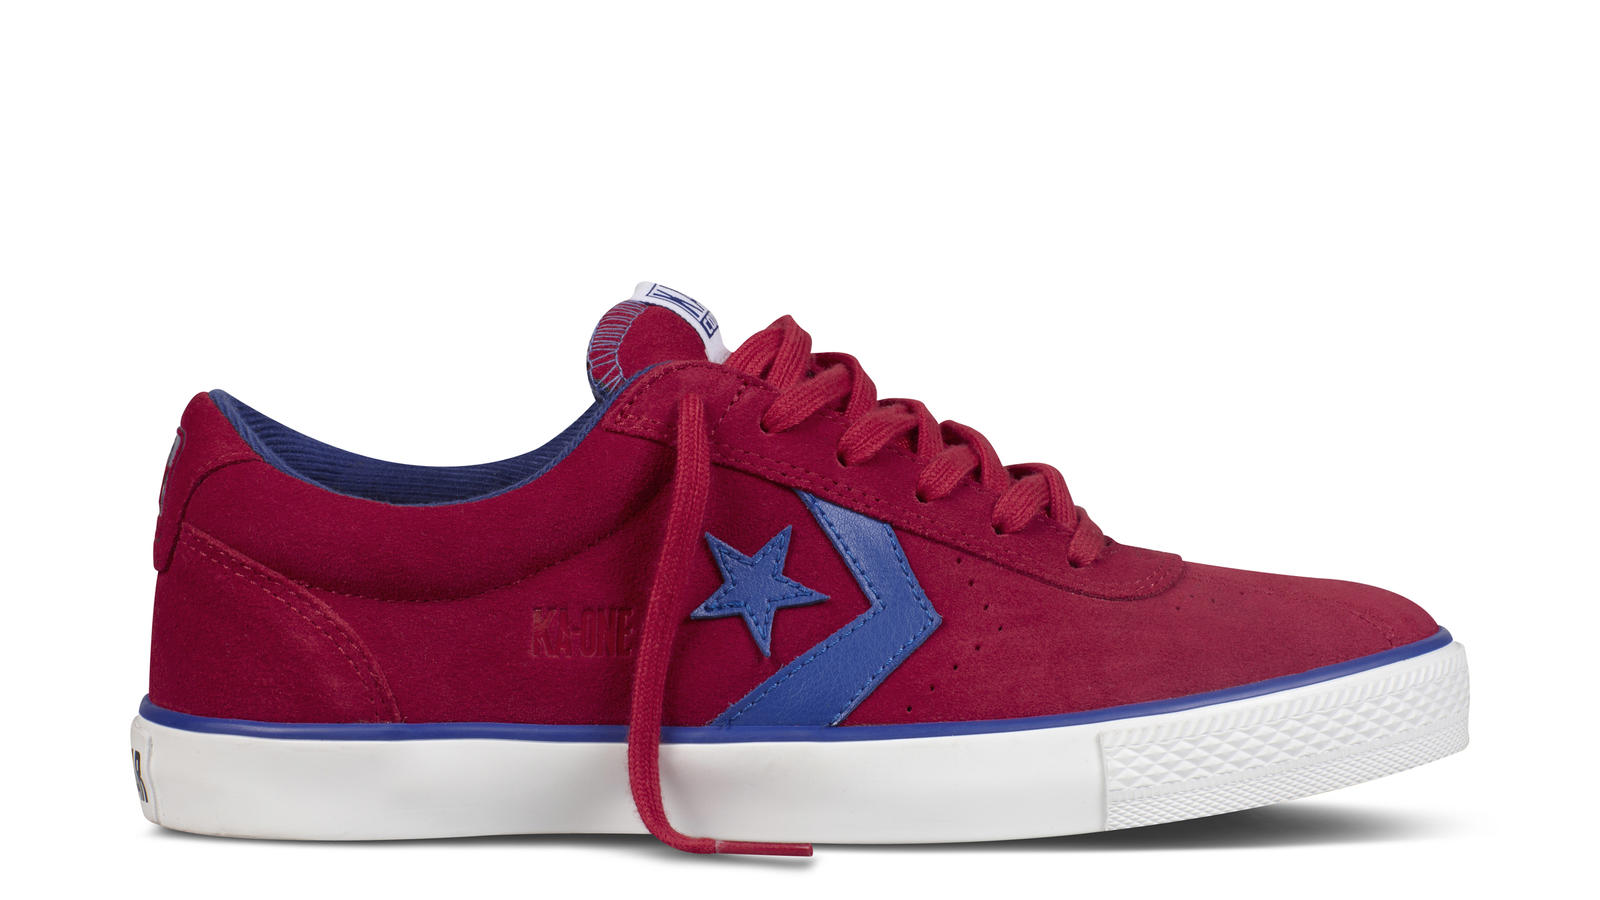 03a2c53c6cc4 Converse Launches Its Spring Summer 2013 CONS Collection - Nike News